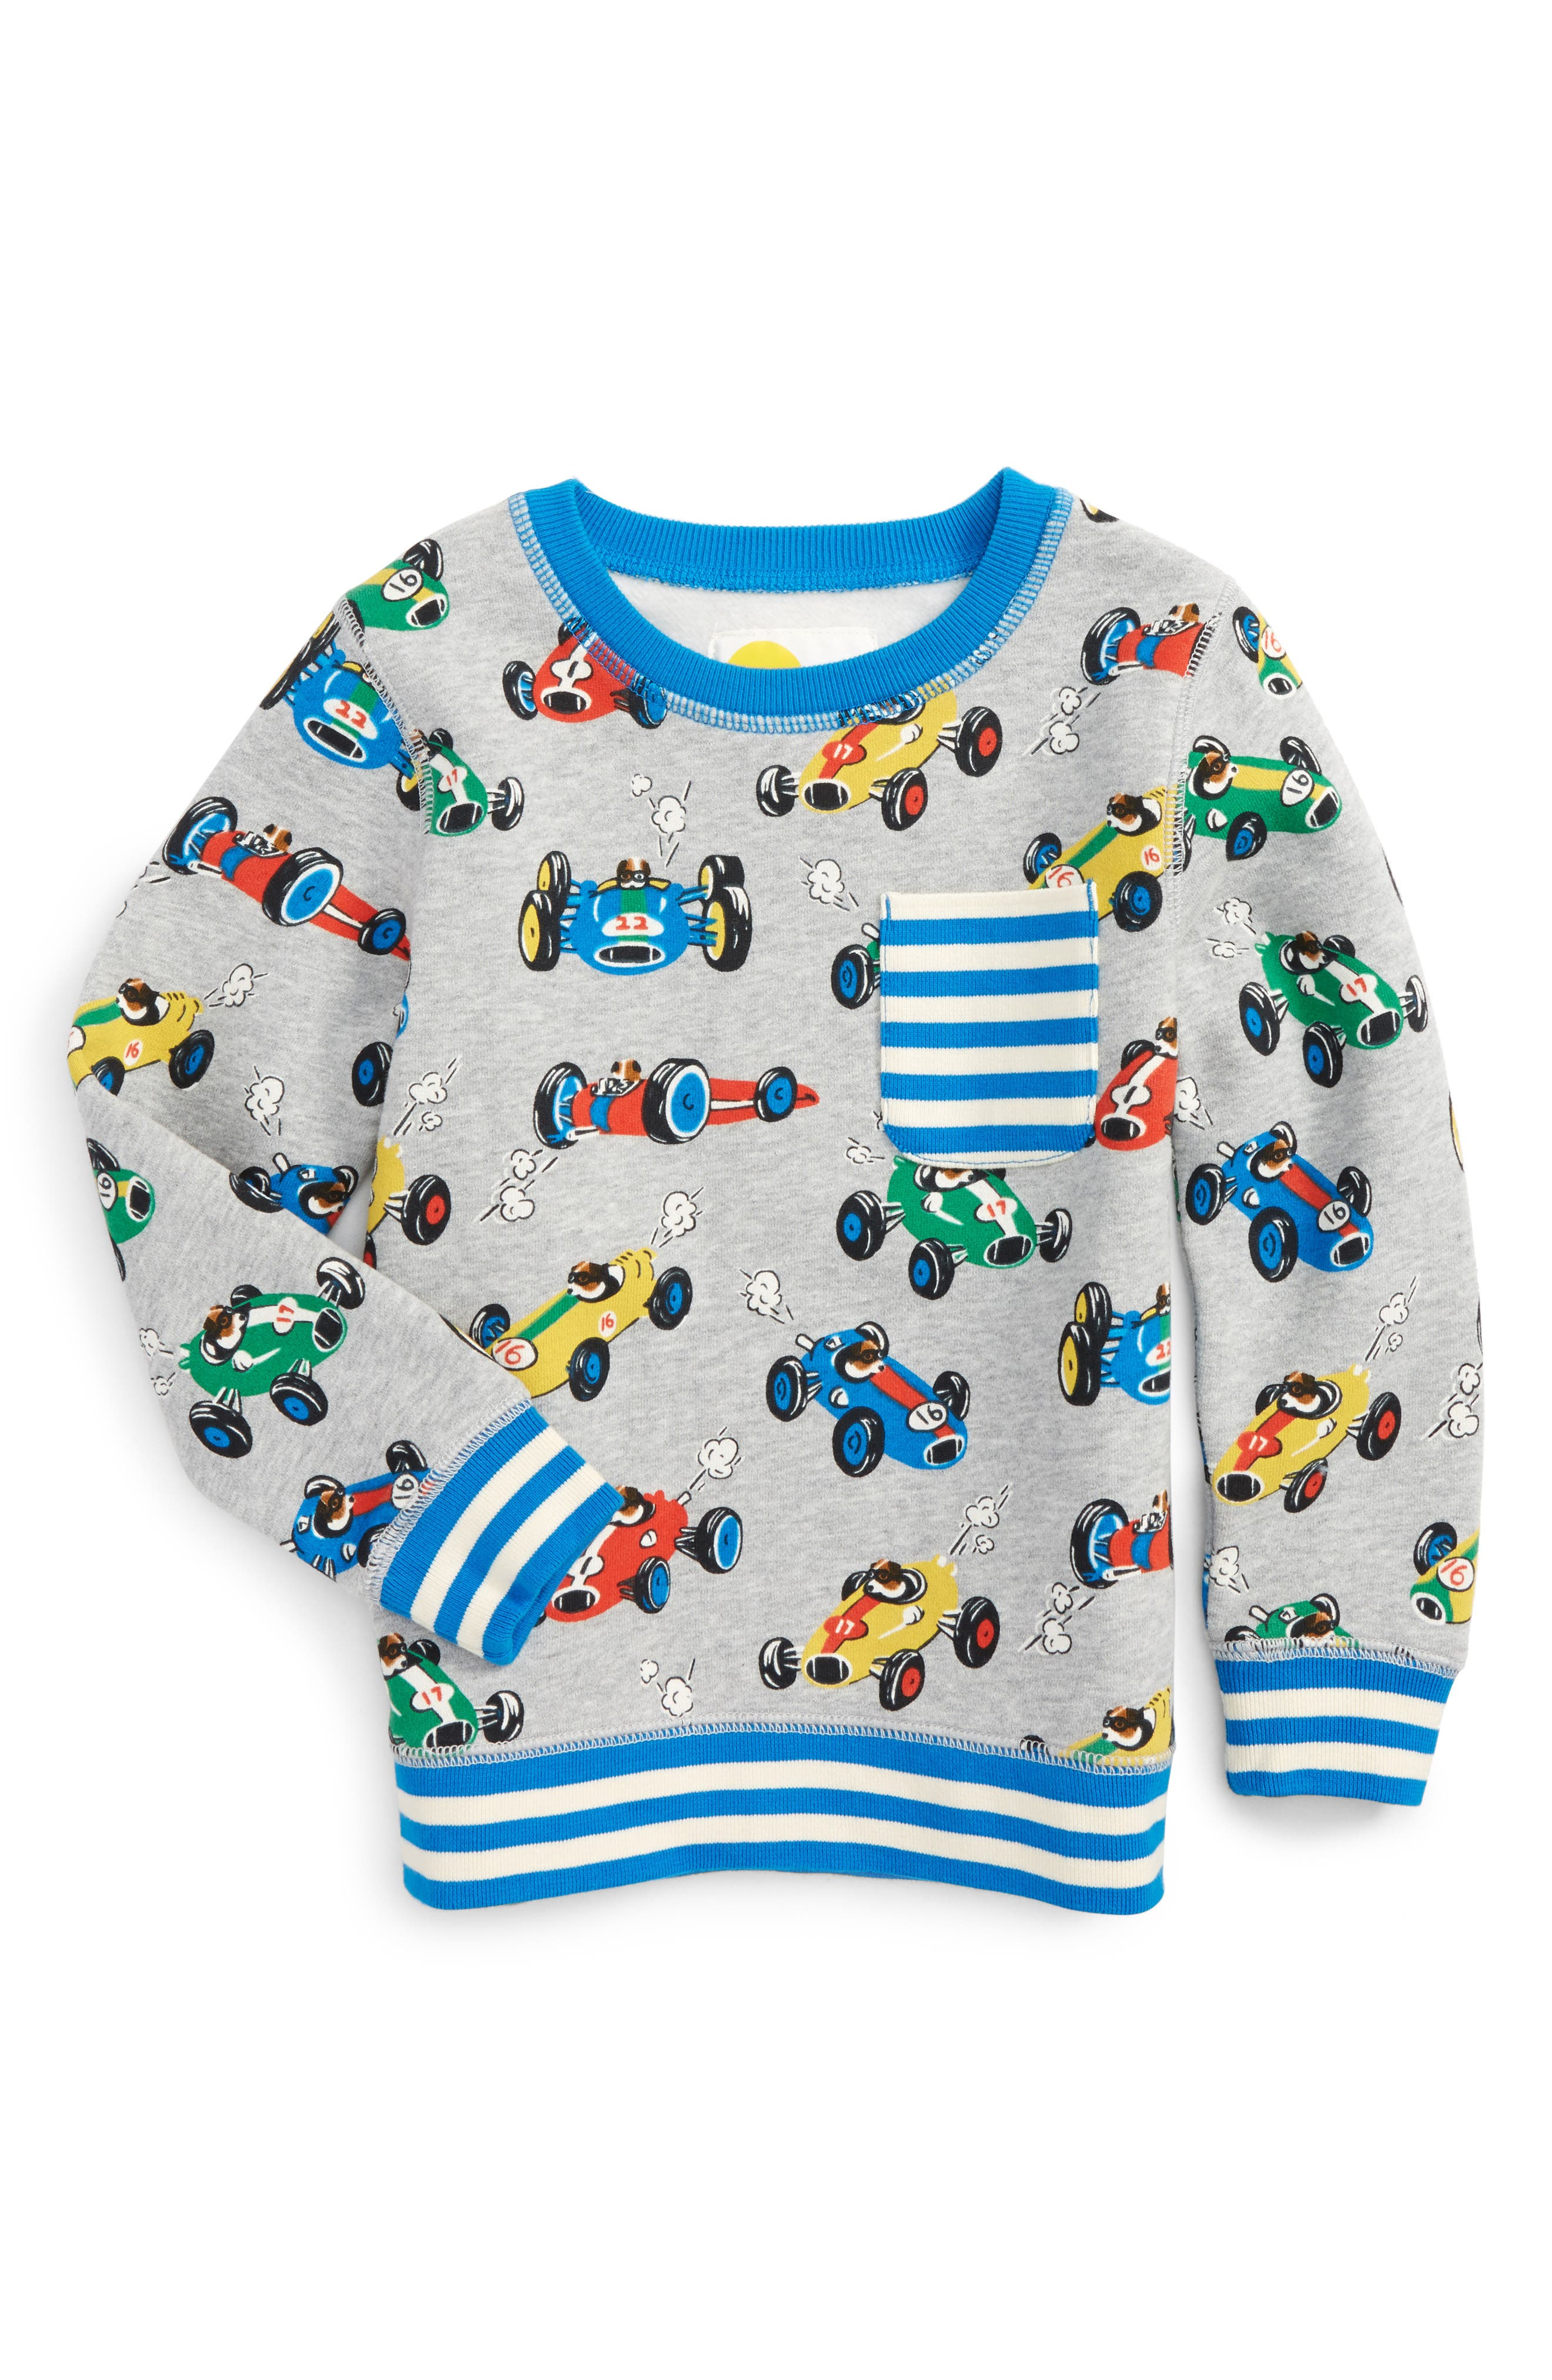 Main Image - Mini Boden Fun Print Sweatshirt (Toddler Boys, Little Boys & Big Boys)